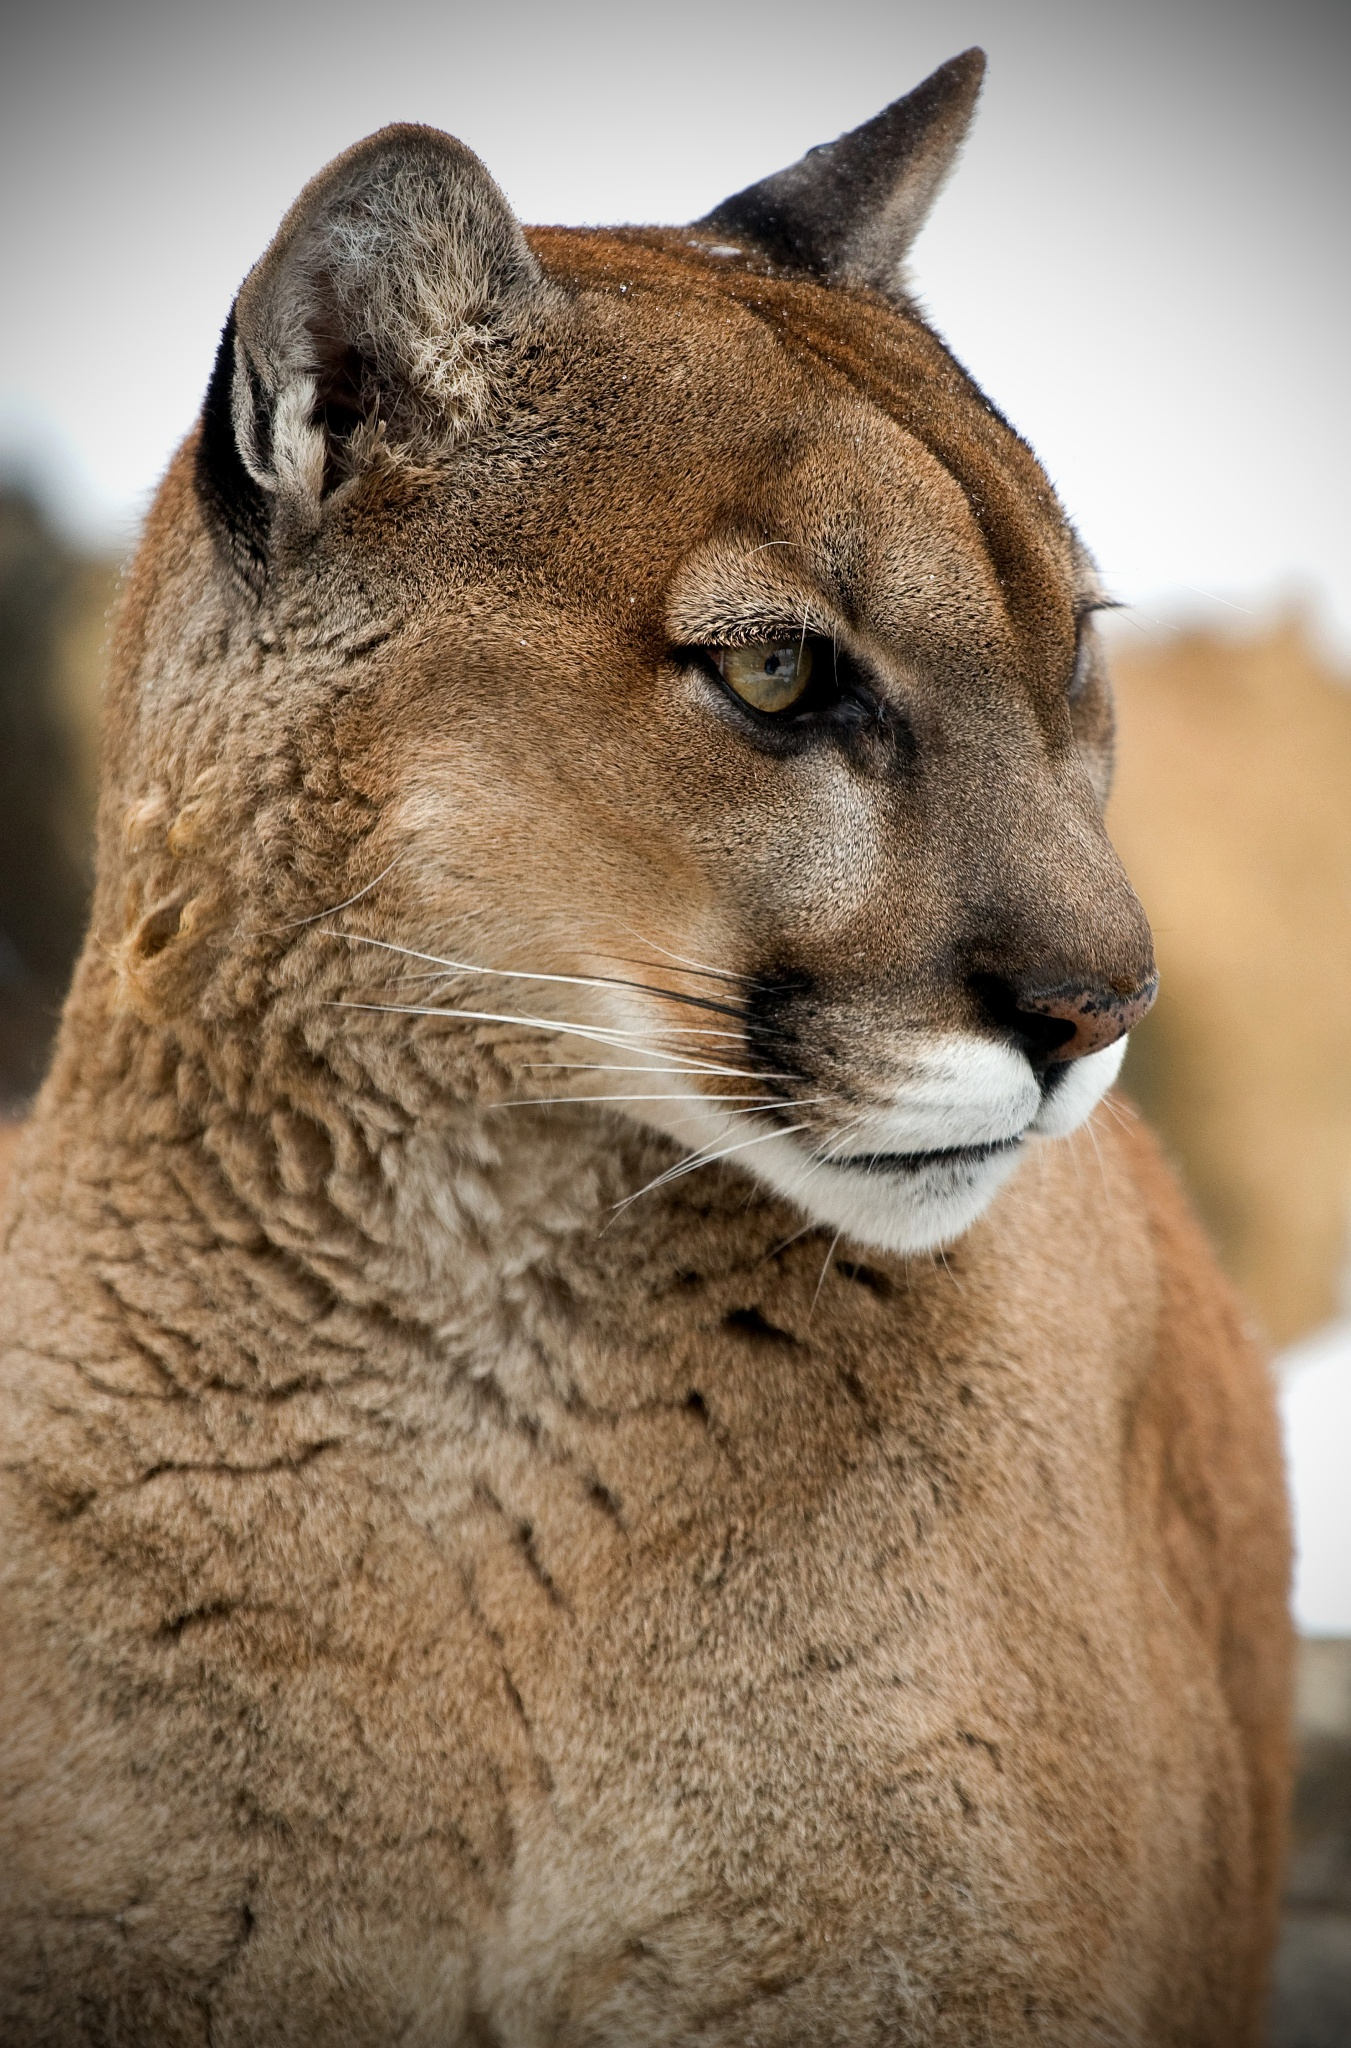 cougar or coyote essay Below is an essay on mountain lion from anti essays, your source for research papers, essays, and term paper examples mountain lions are solitary and very powerful animals it's generally known as a cougar, a panther or a puma.